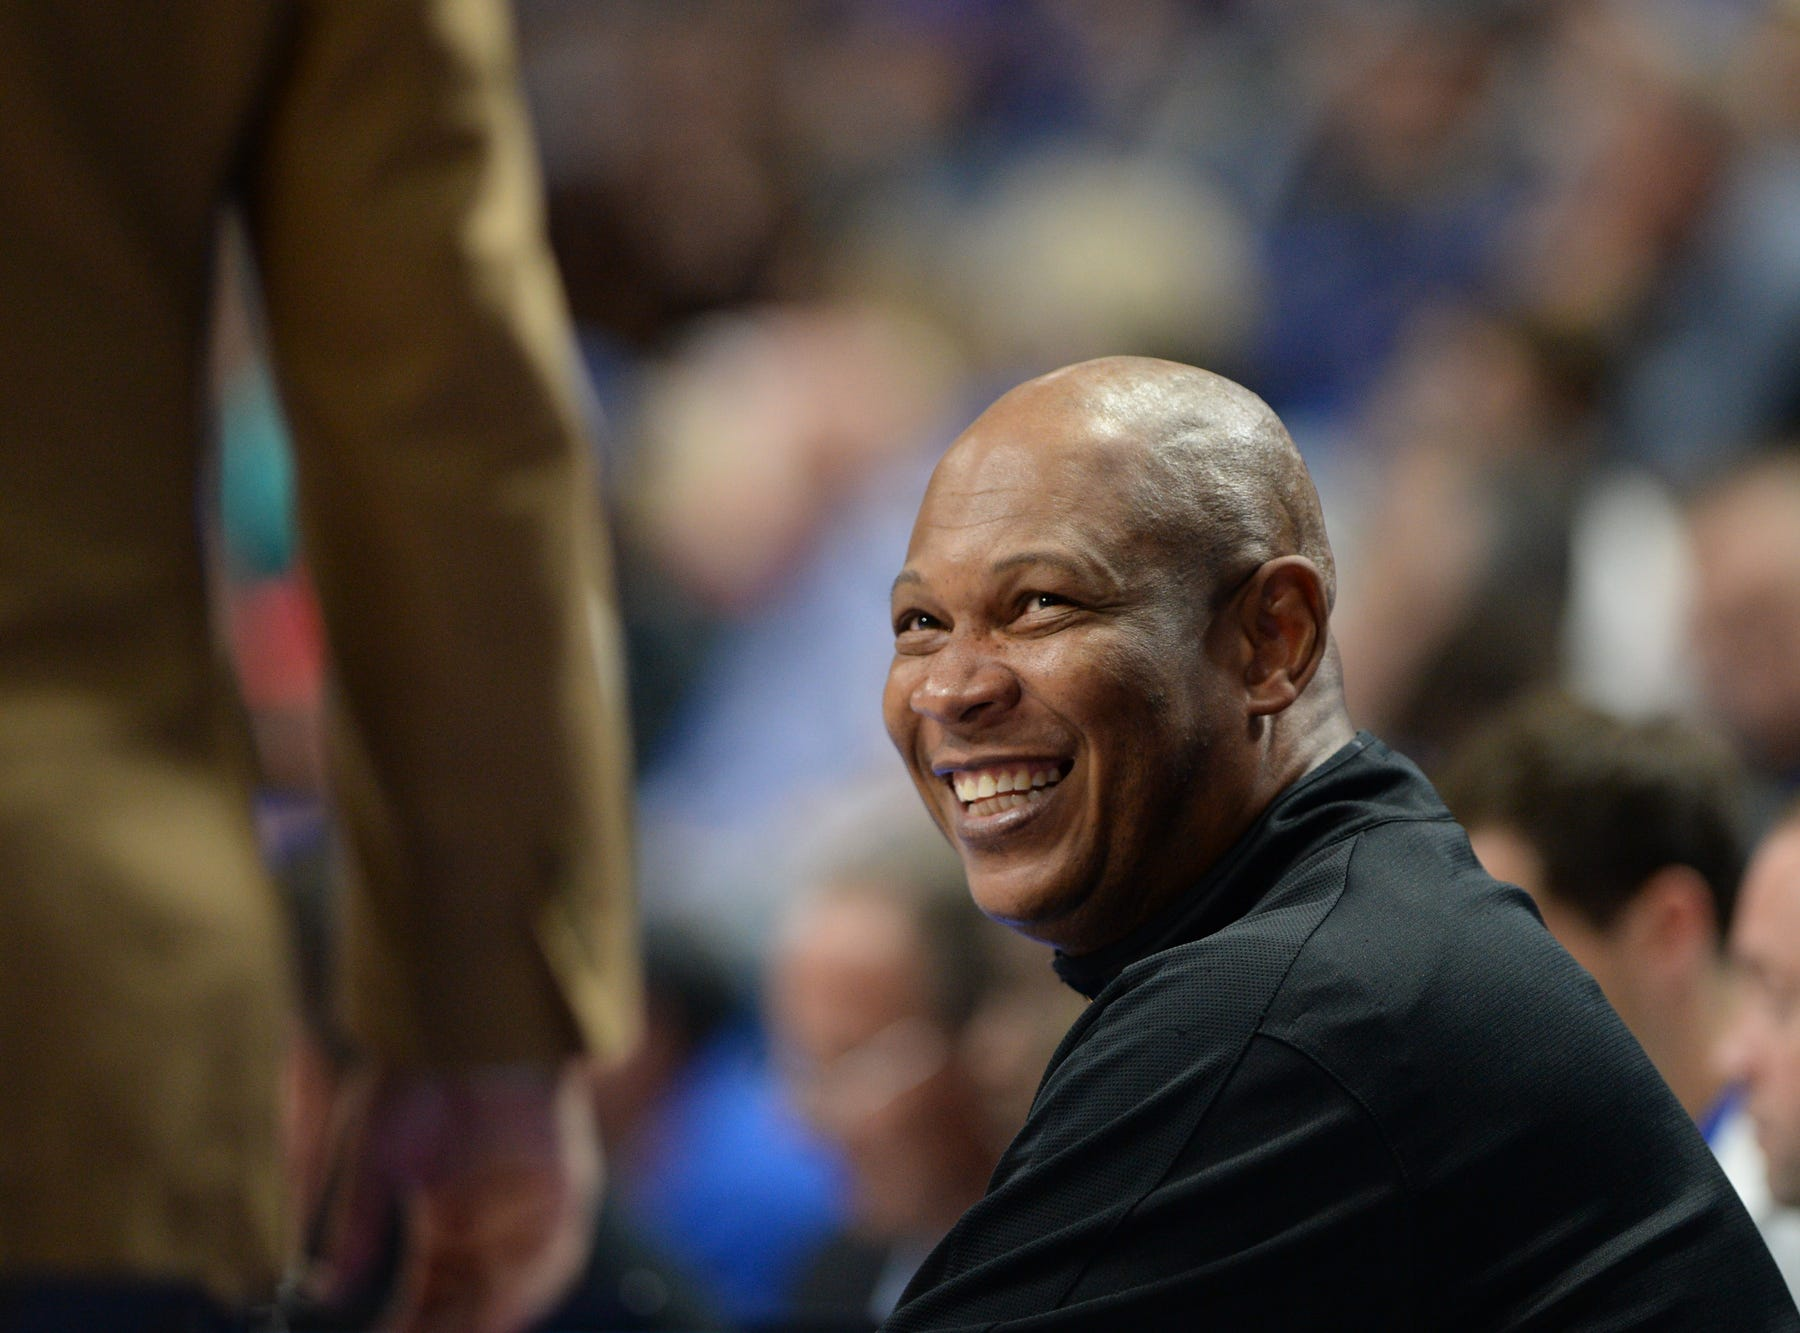 UK coach Kenny Payne during the University of Kentucky mens basketball Blue/White game at Rupp Arena in Lexington, Kentucky on Sunday, October 21, 2018.